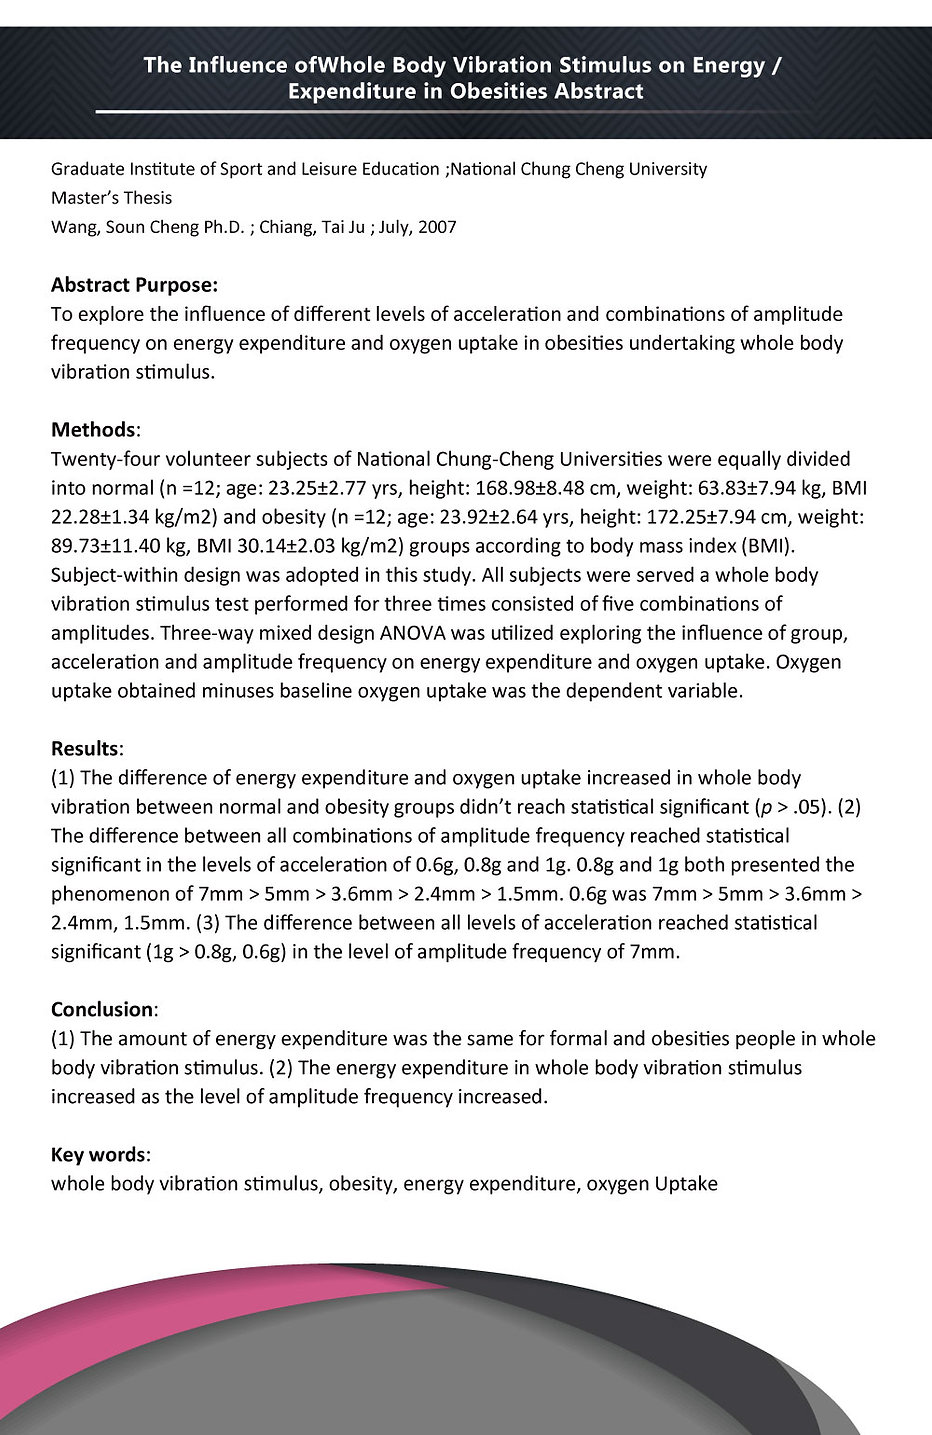 NATIONAL CHUNG CHENG UNIVERSITY - The Influence of Whole body vibration Stimulus on Energy/Expenditure in Obesities Abstract